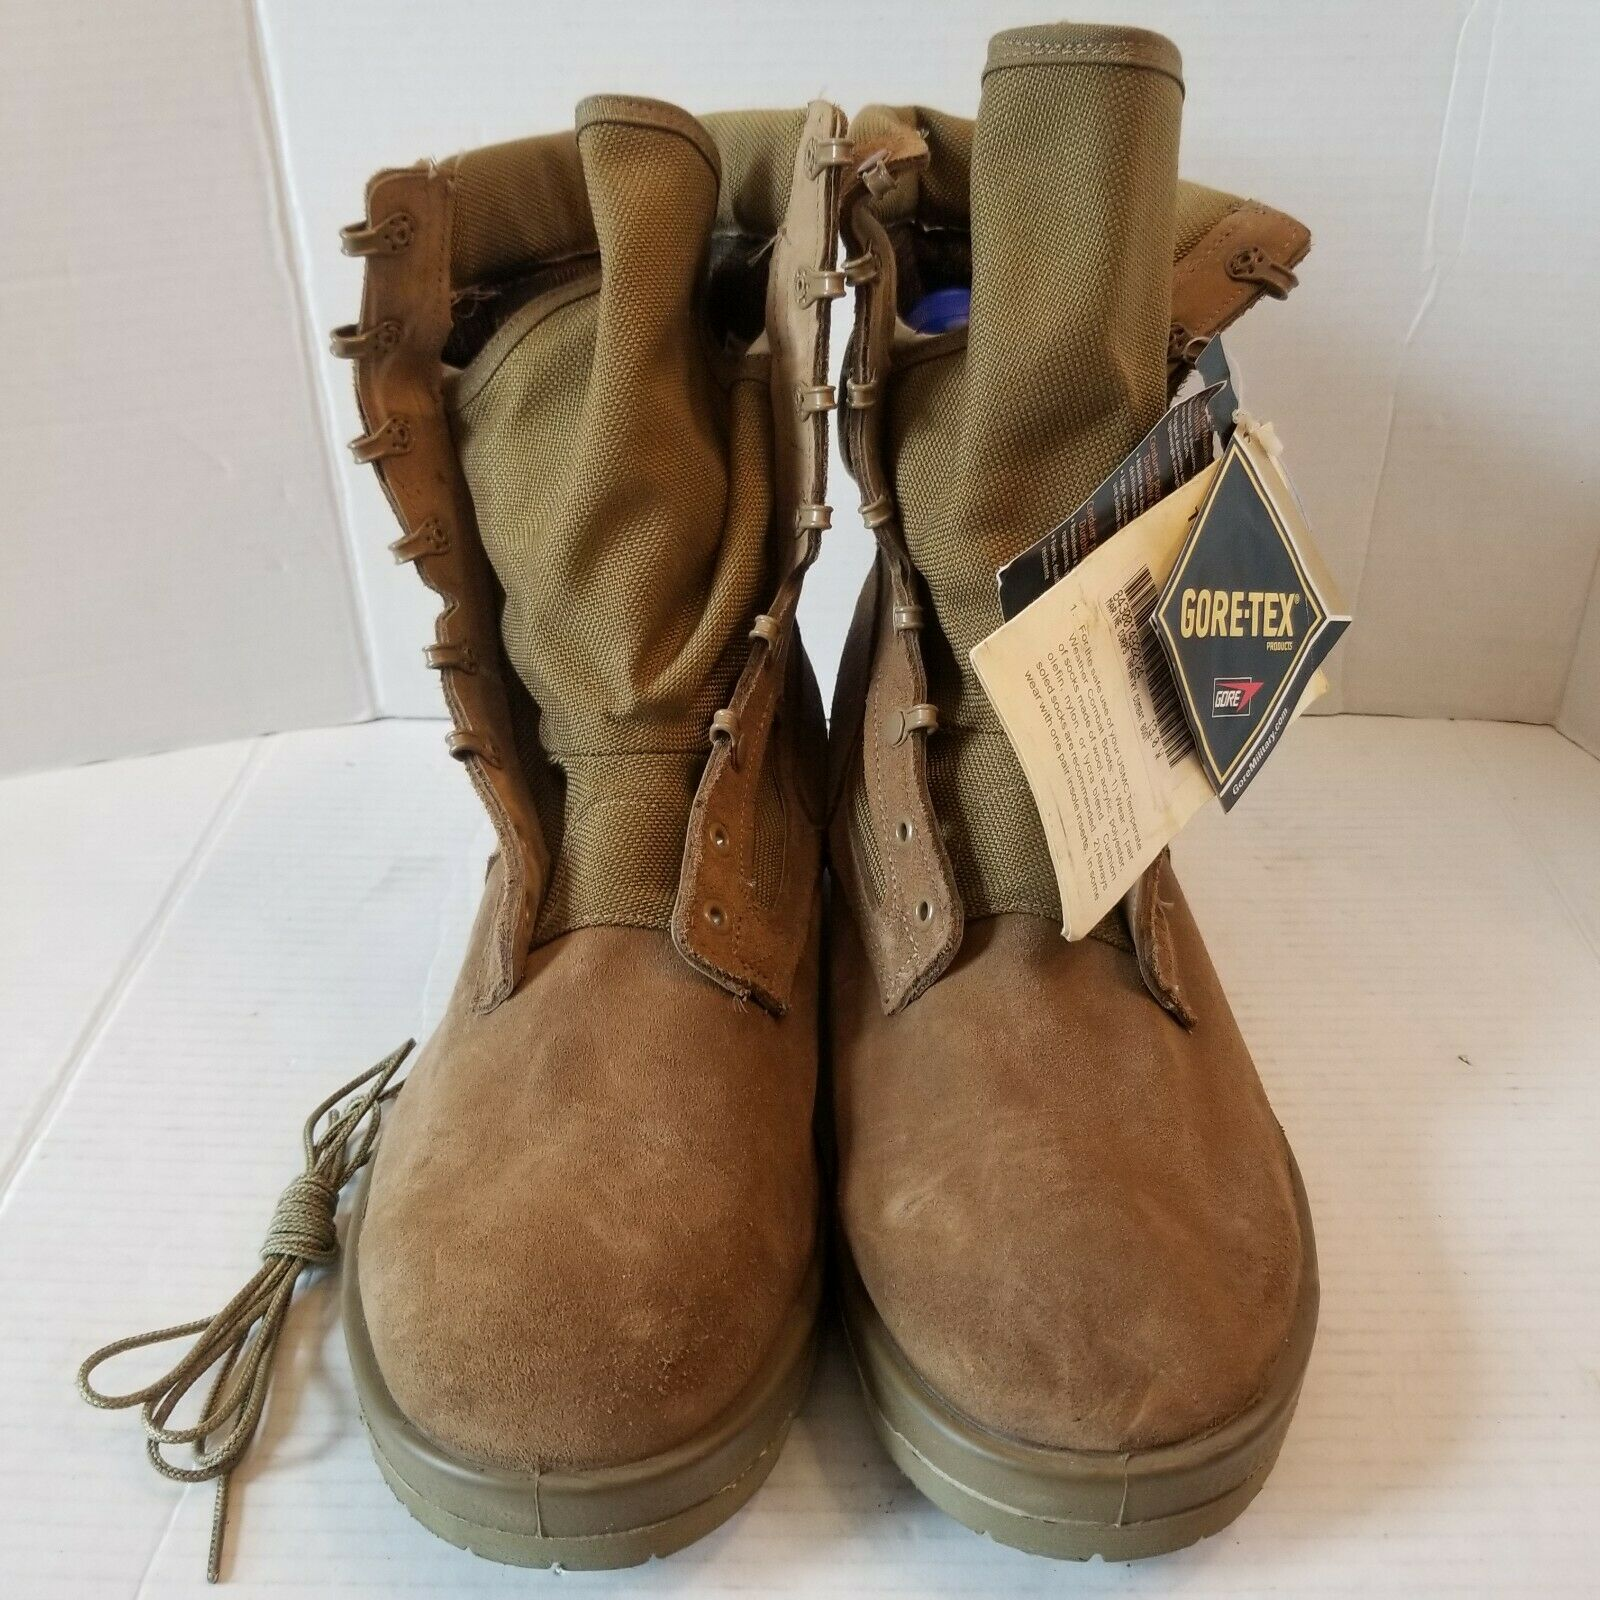 🔥Goretex boots marine corps infantry combat boot size 13 new with tags 1 lace